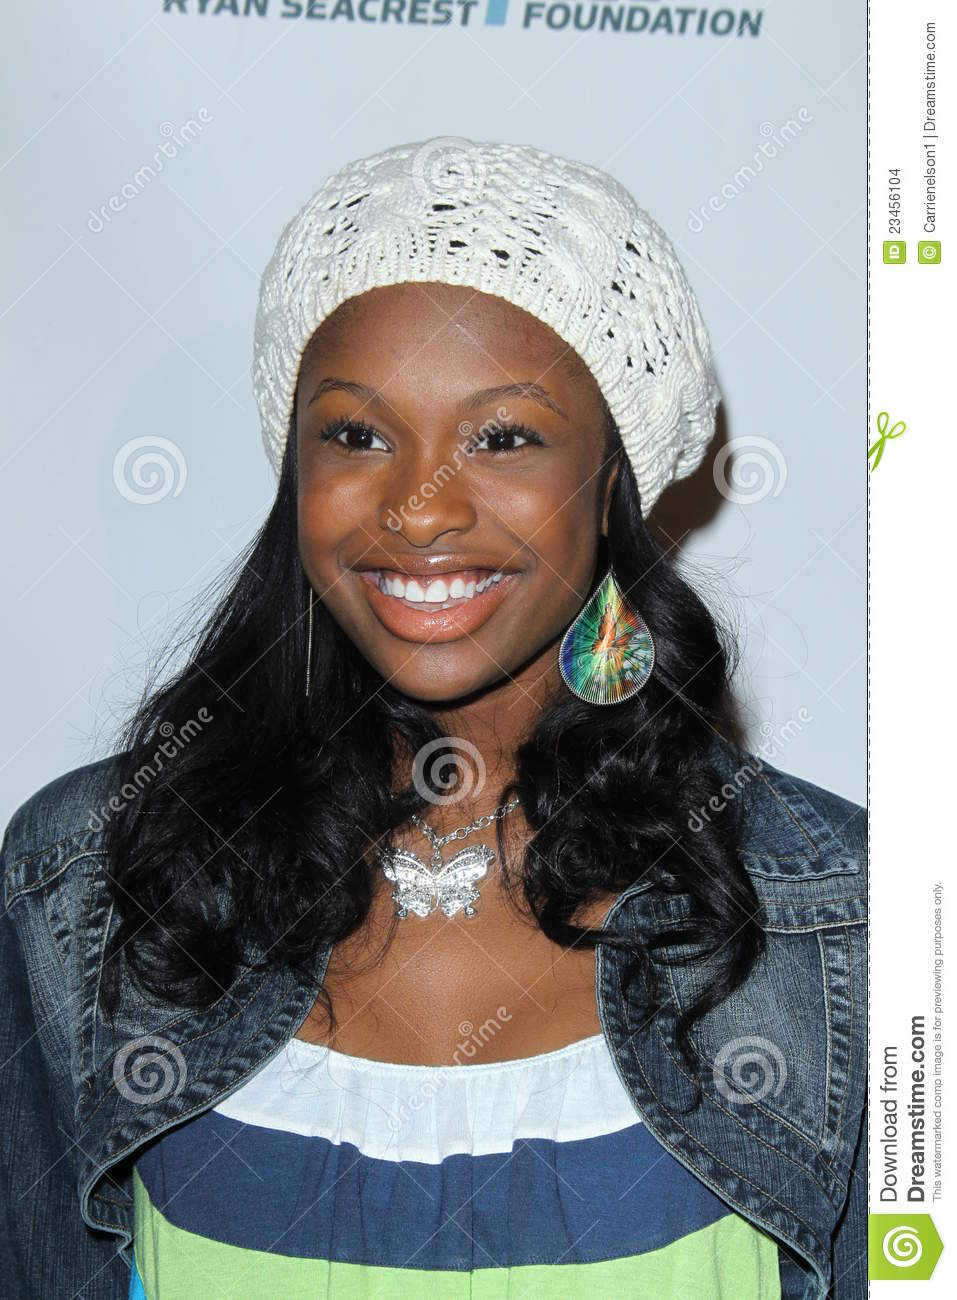 coco jones what i said lyrics